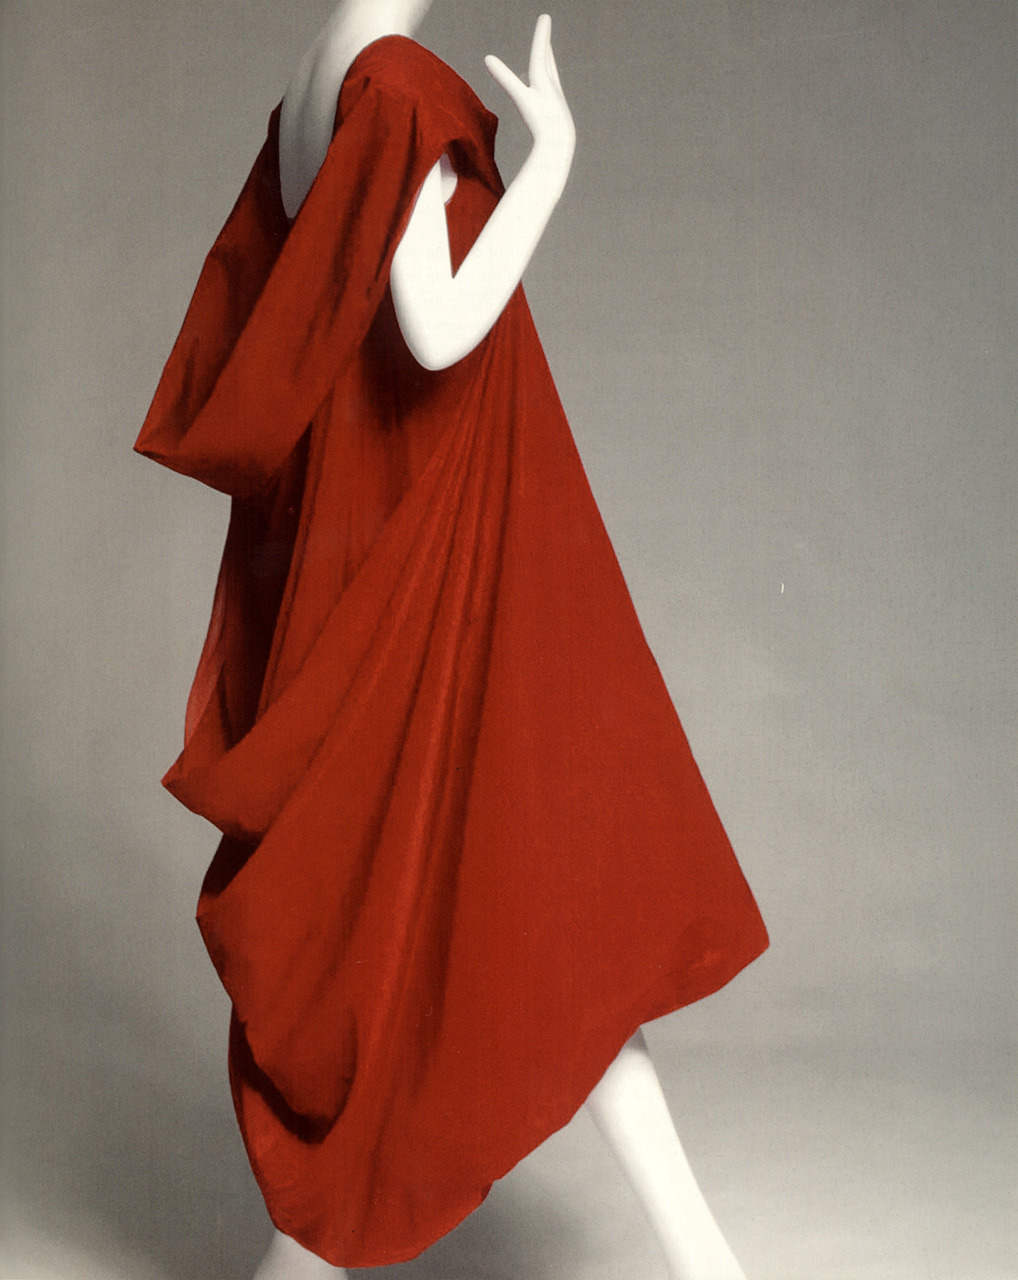 Rei Kawakubo for Comme des Garçons. red silk taffeta, Spring–Summer 1991Collection of the Museum at FIT Photography: Irving Solero  Formalism And Revolution: Rei Kawakubo and Yohji Yamamoto by Patricia Mears Japan Fashion NowPublished in association with The Museum at the Fashion Institute of Technology, New York